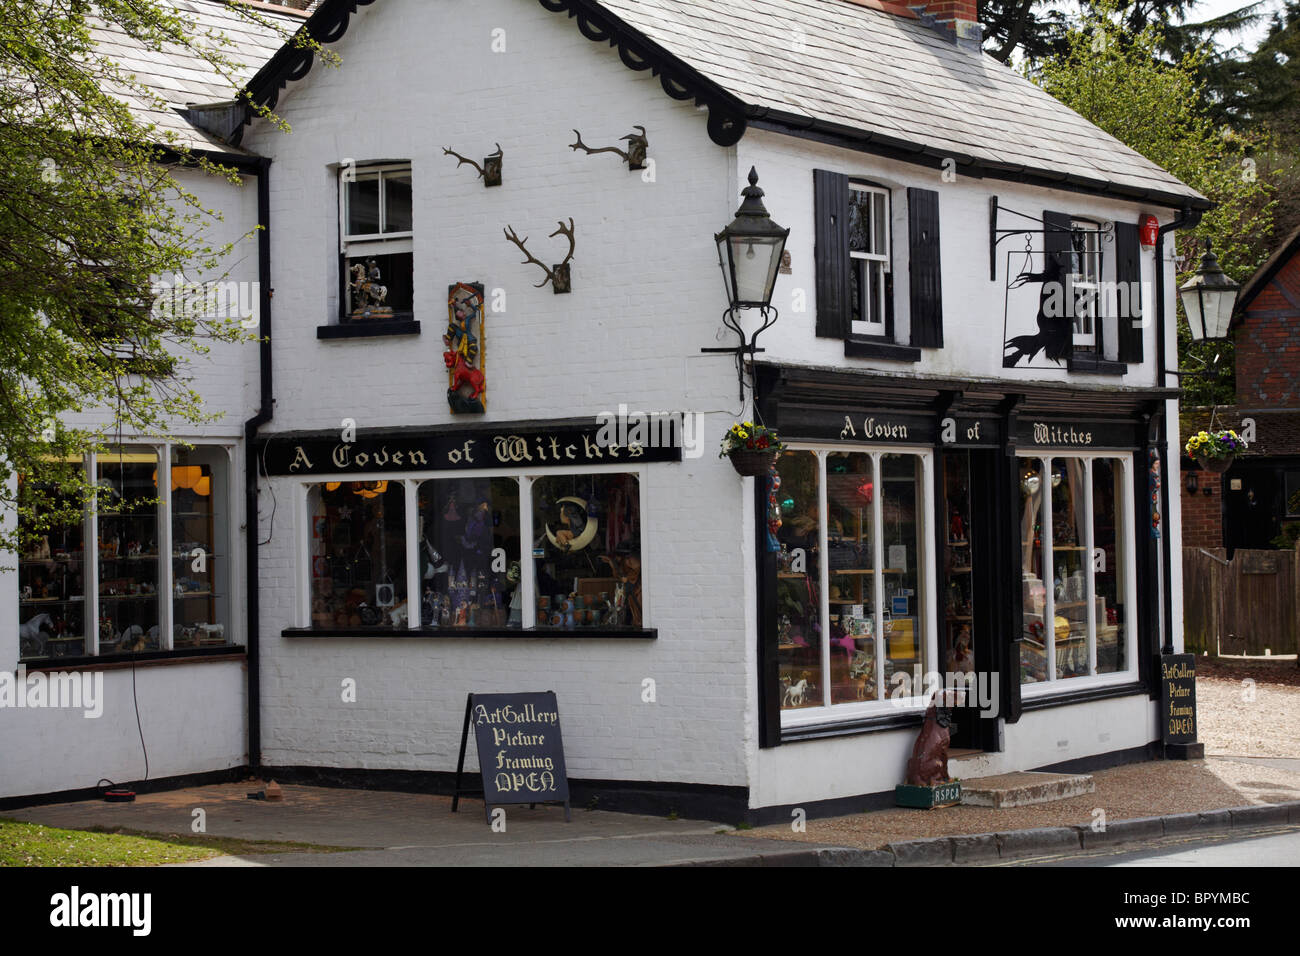 Coven witches shop in burley stock photos coven witches shop in a coven of witches curiosity shop in burley new forest hampshire stock image biocorpaavc Images